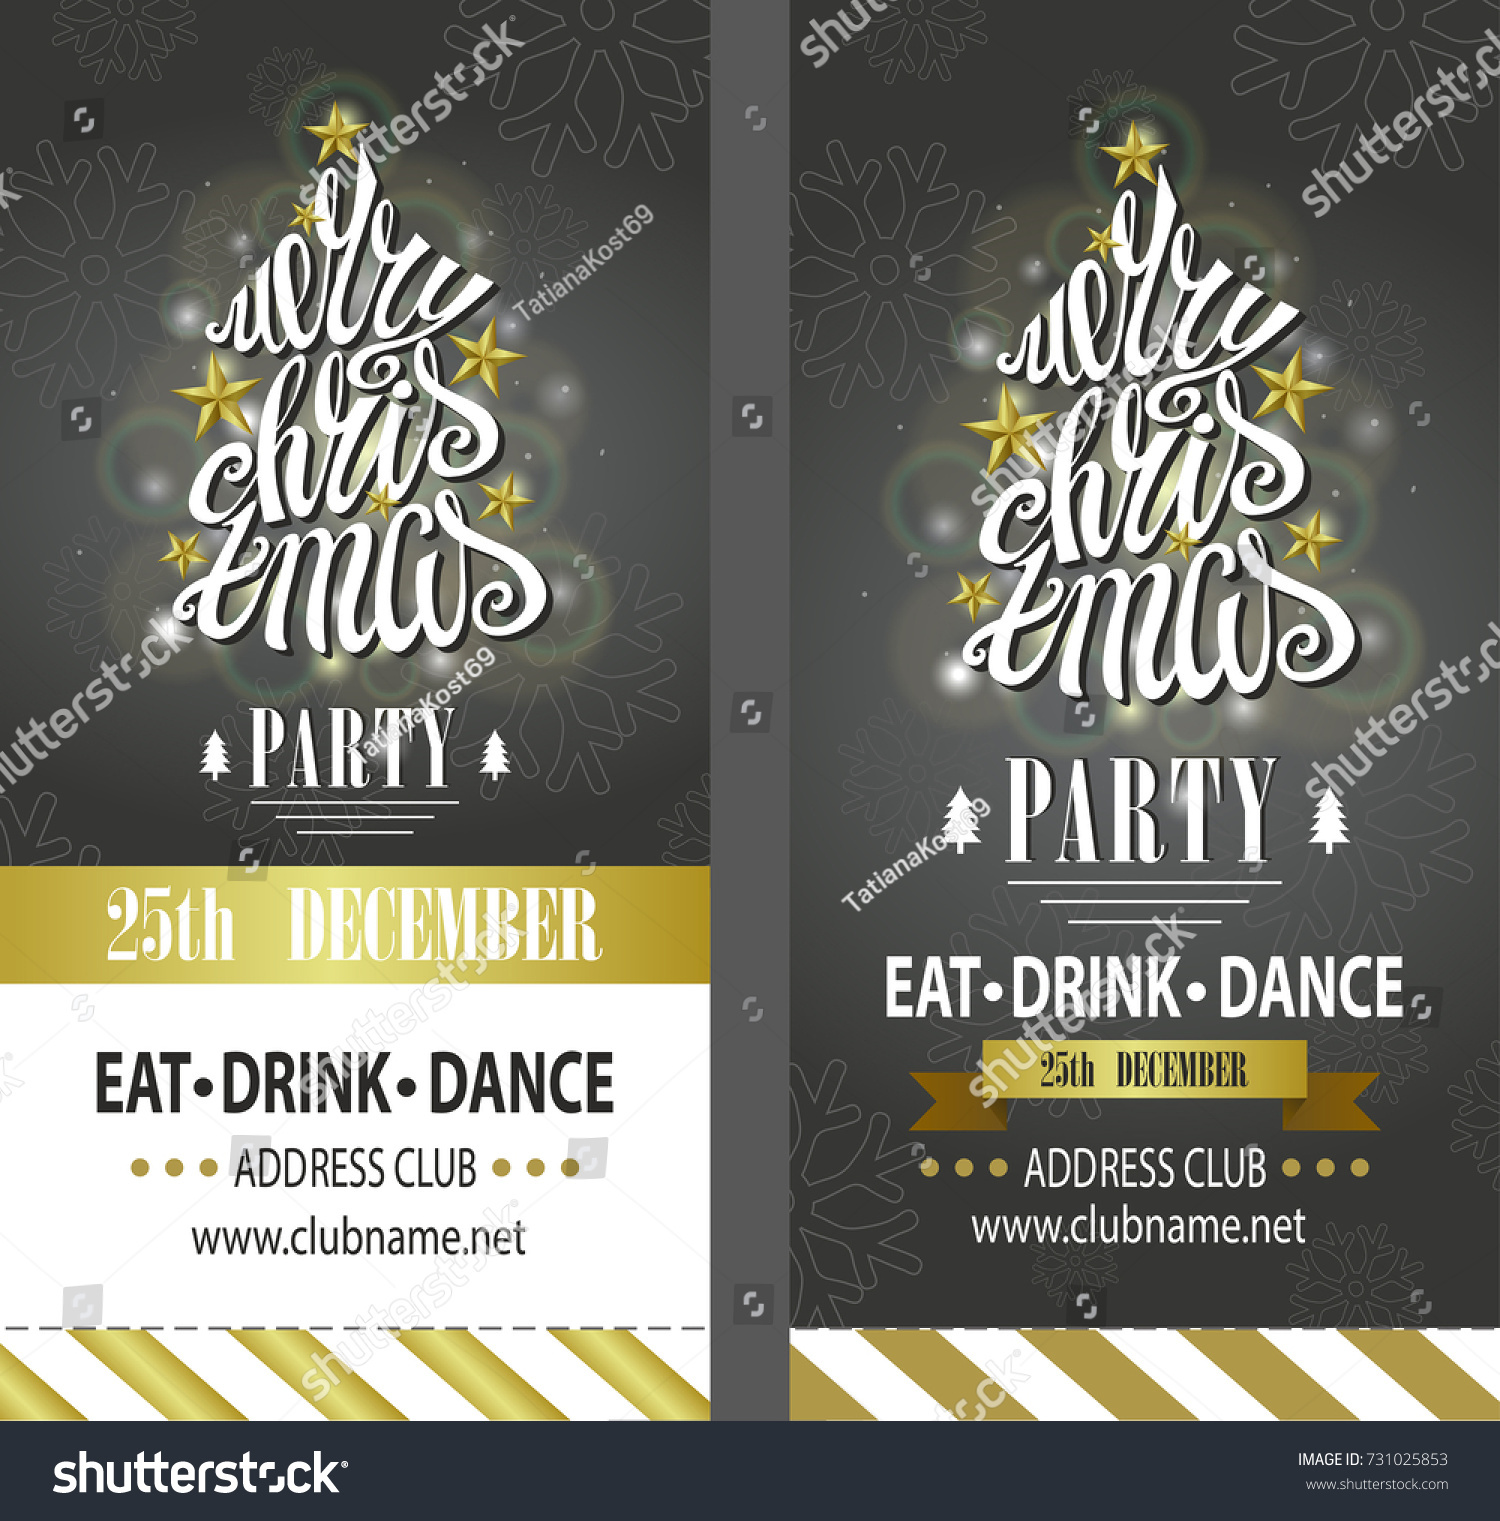 Christmas Party Ticket Template Free: Merry Christmas Party Invitationdesign Templateflyerticket